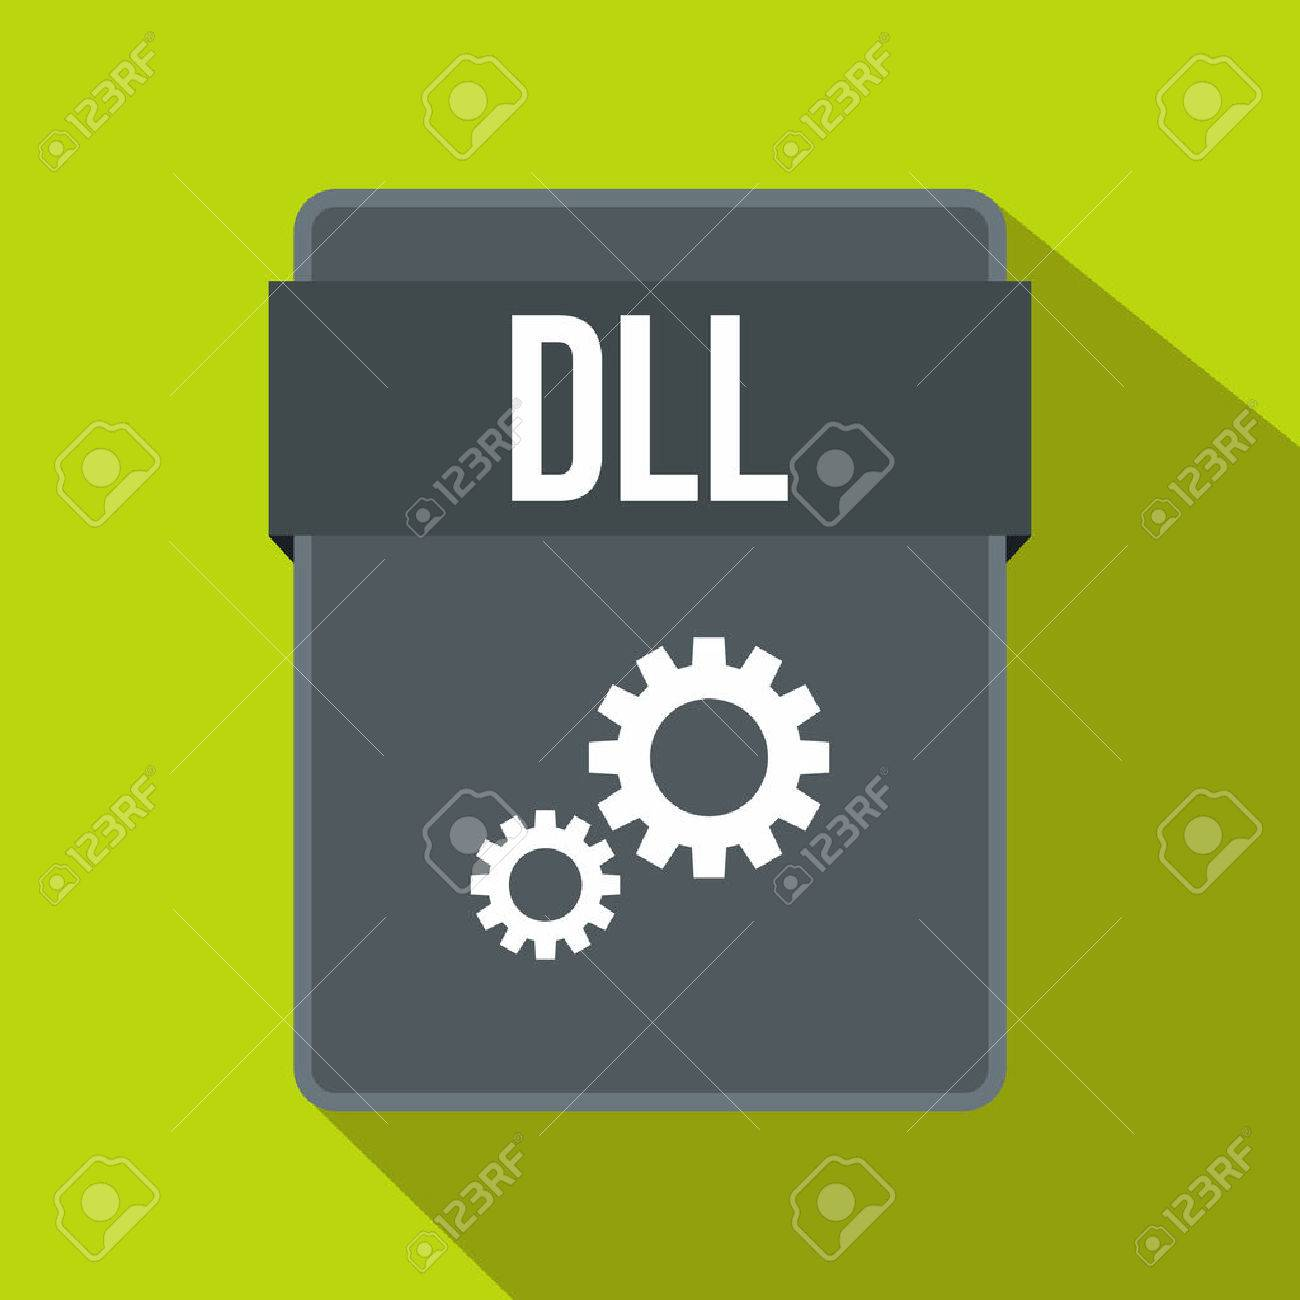 DLL file icon in flat style on a green background - 61121488